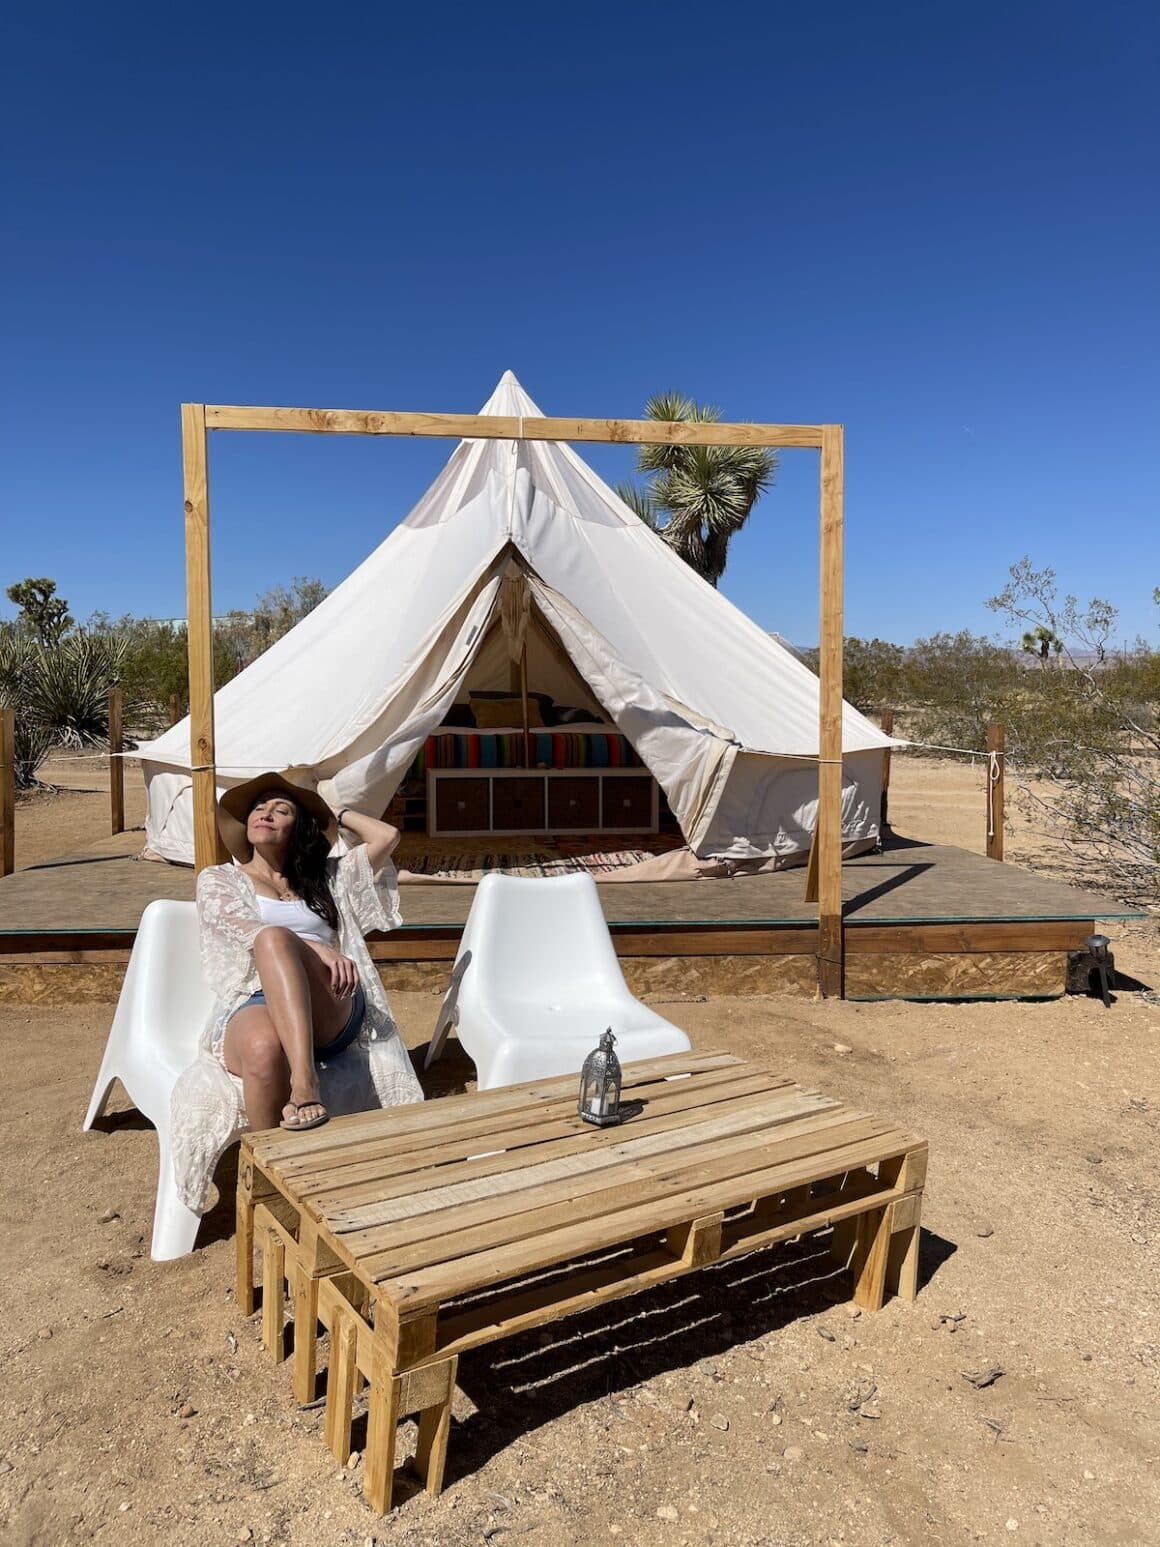 Unique luxury glamping escapes - The Healthy Voyager